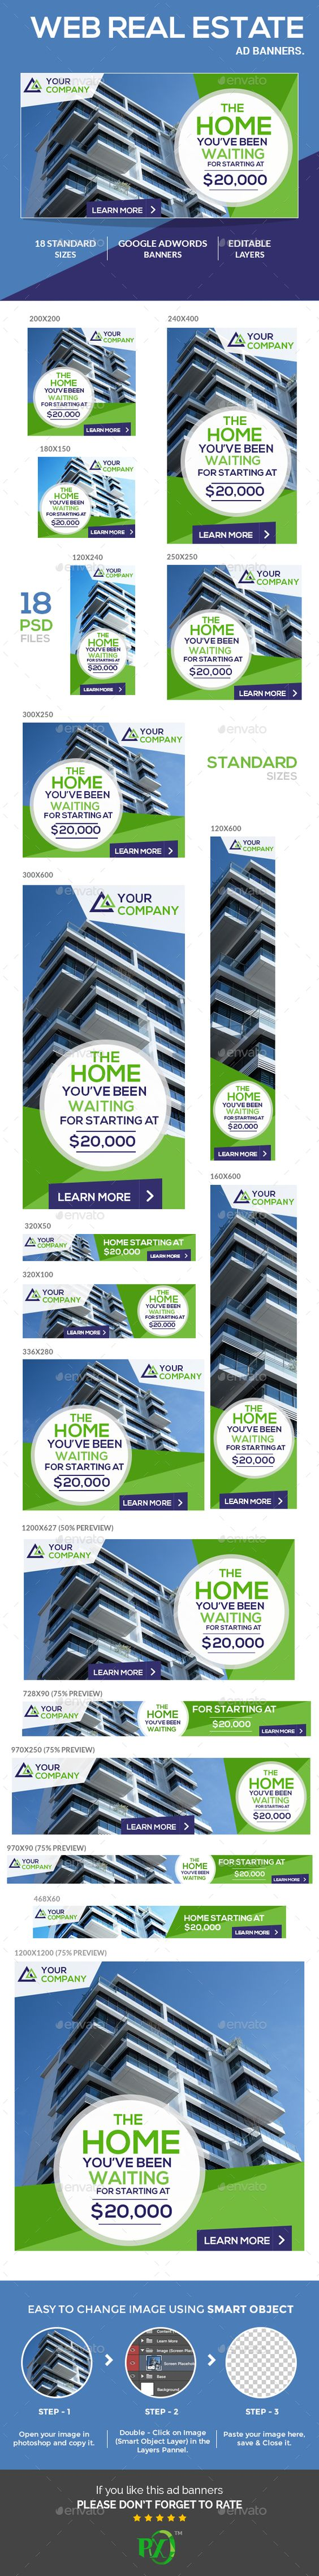 web real estate ad banners template psd here web real estate ad banners template psd here graphicriver